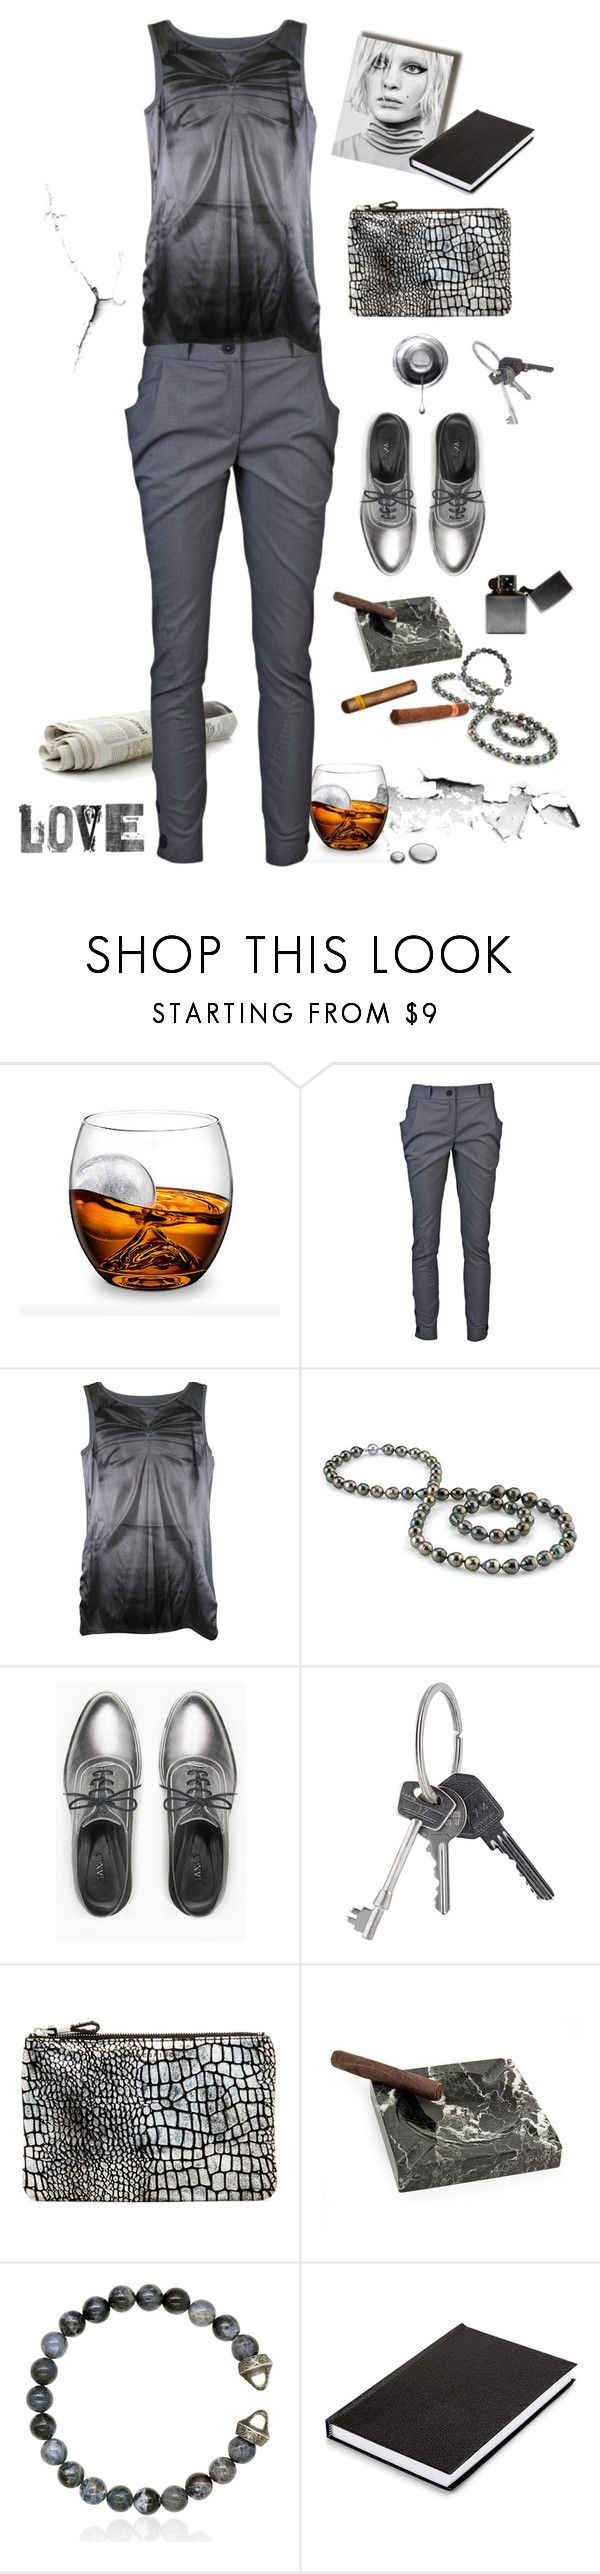 """""""babe, your ice is melting"""" by ms-wednesday-addams ❤ liked on Polyvore featuring Frontgate, Vivienne Westwood Anglomania, MARC CAIN, Marc, Max&Co., Givenchy, Liebeskind and Stephen Webster"""